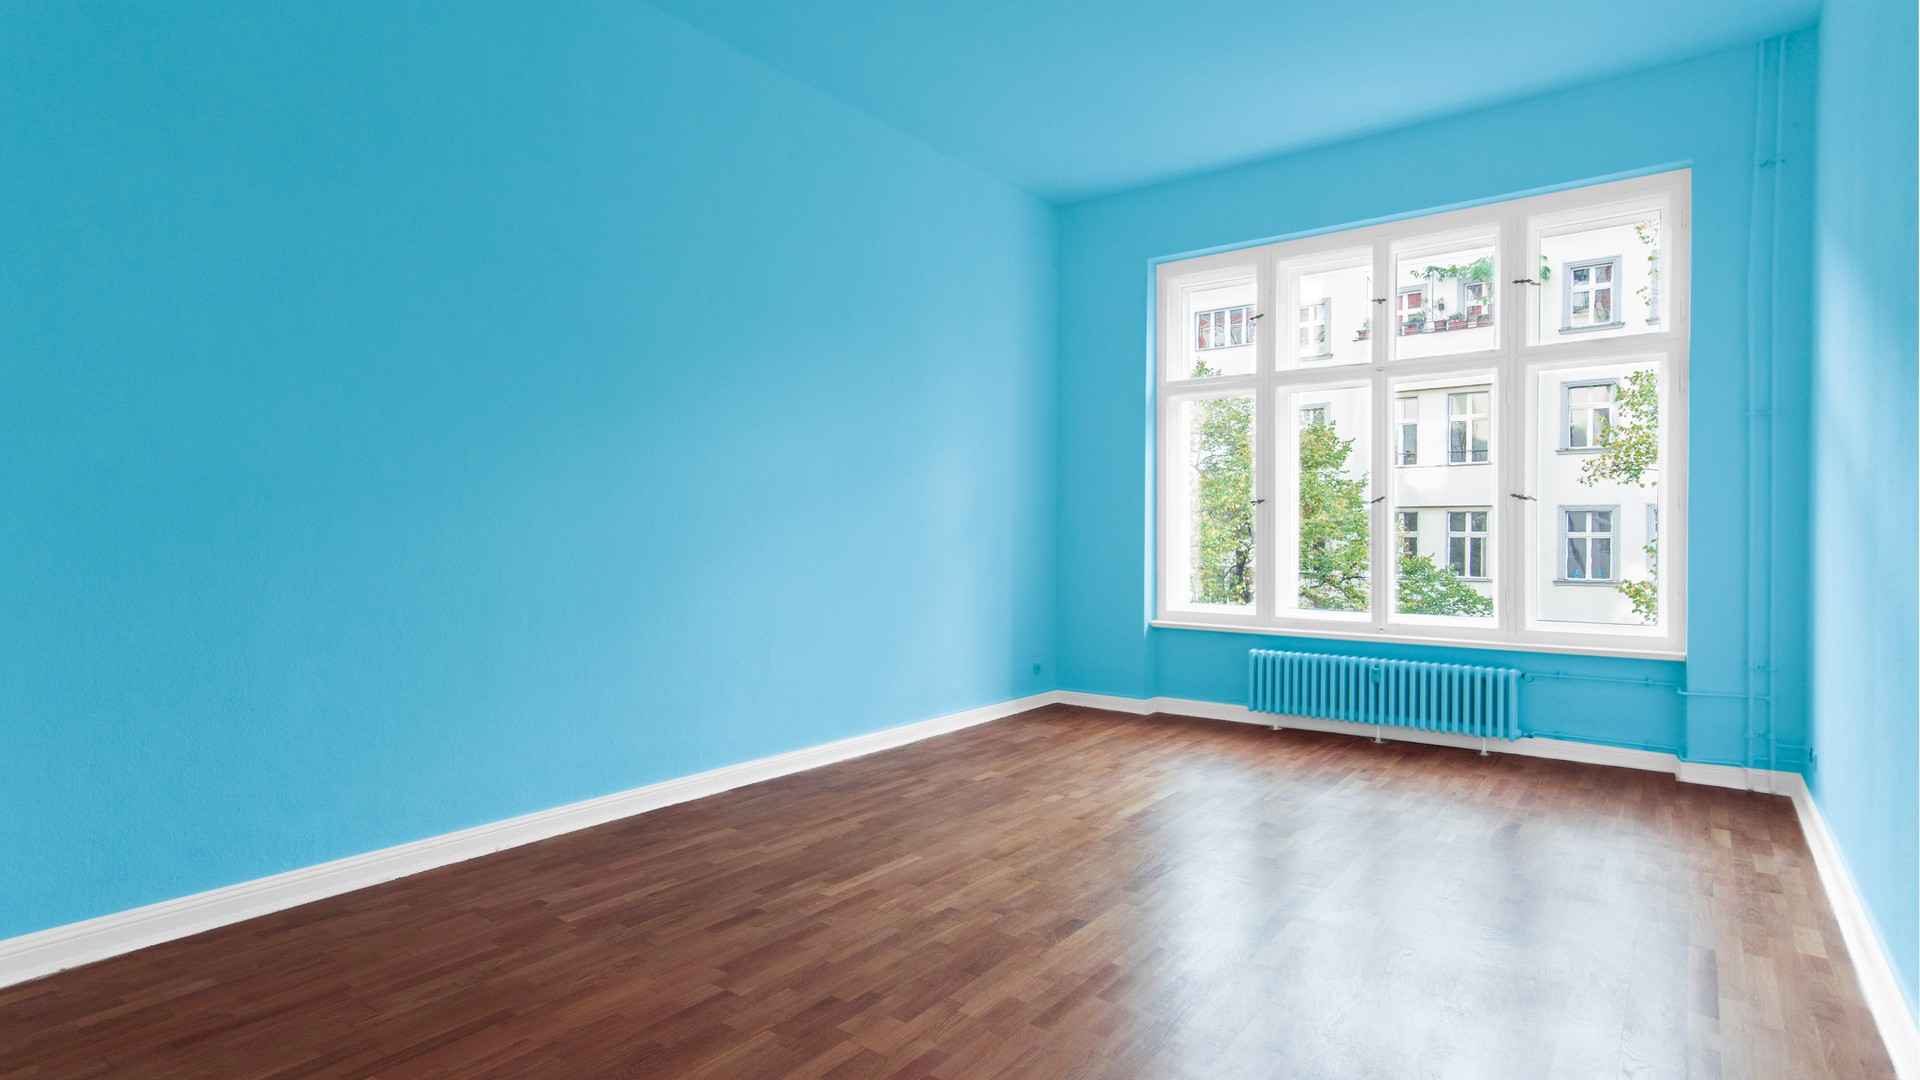 8 SECURITY TIPS WHEN SELLING A VACANT HOME